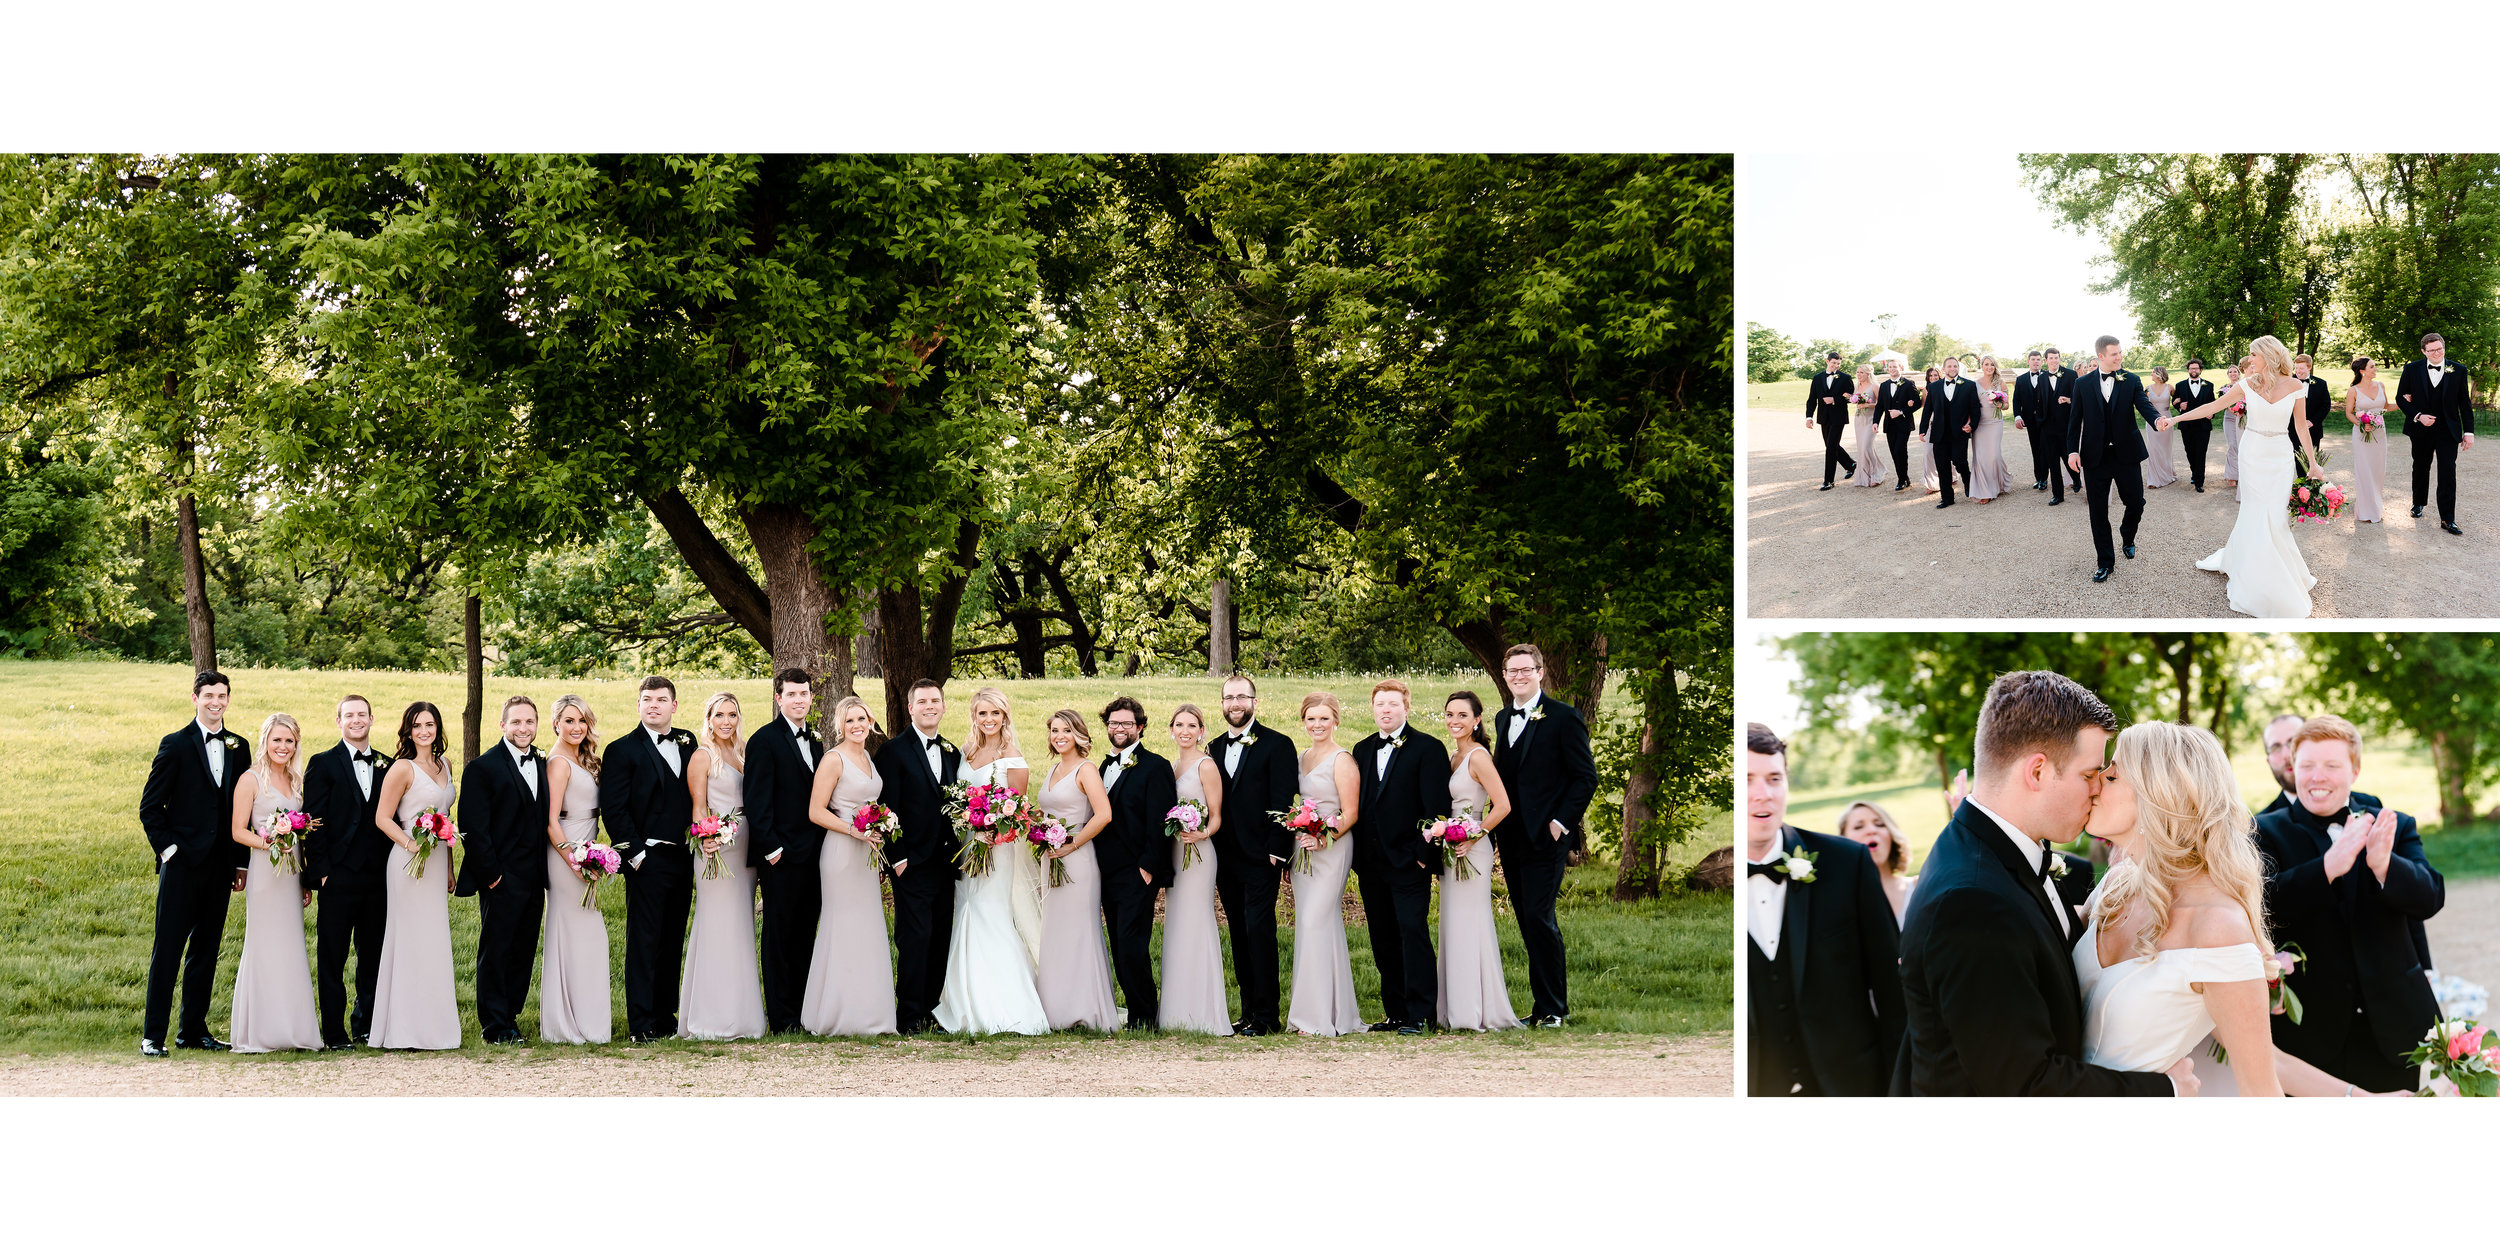 Amanda + Justin - Wedding Album_22.jpg